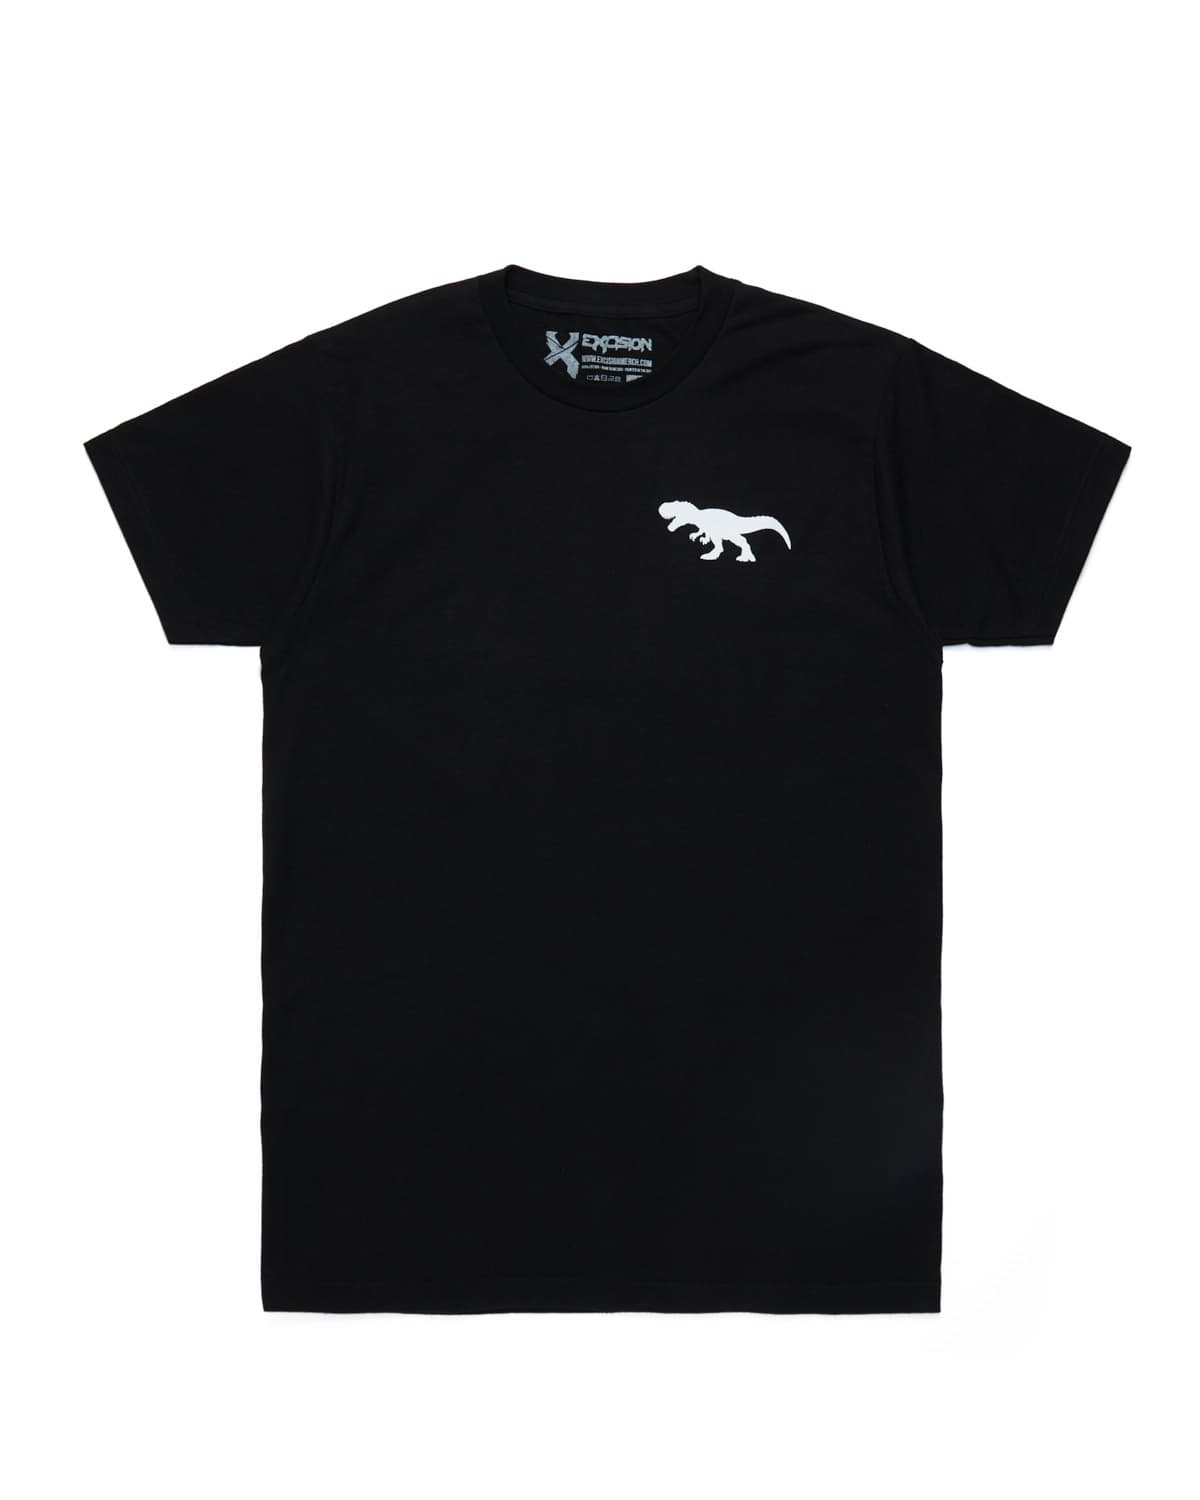 Lost Lands 'T-Rex' Tee